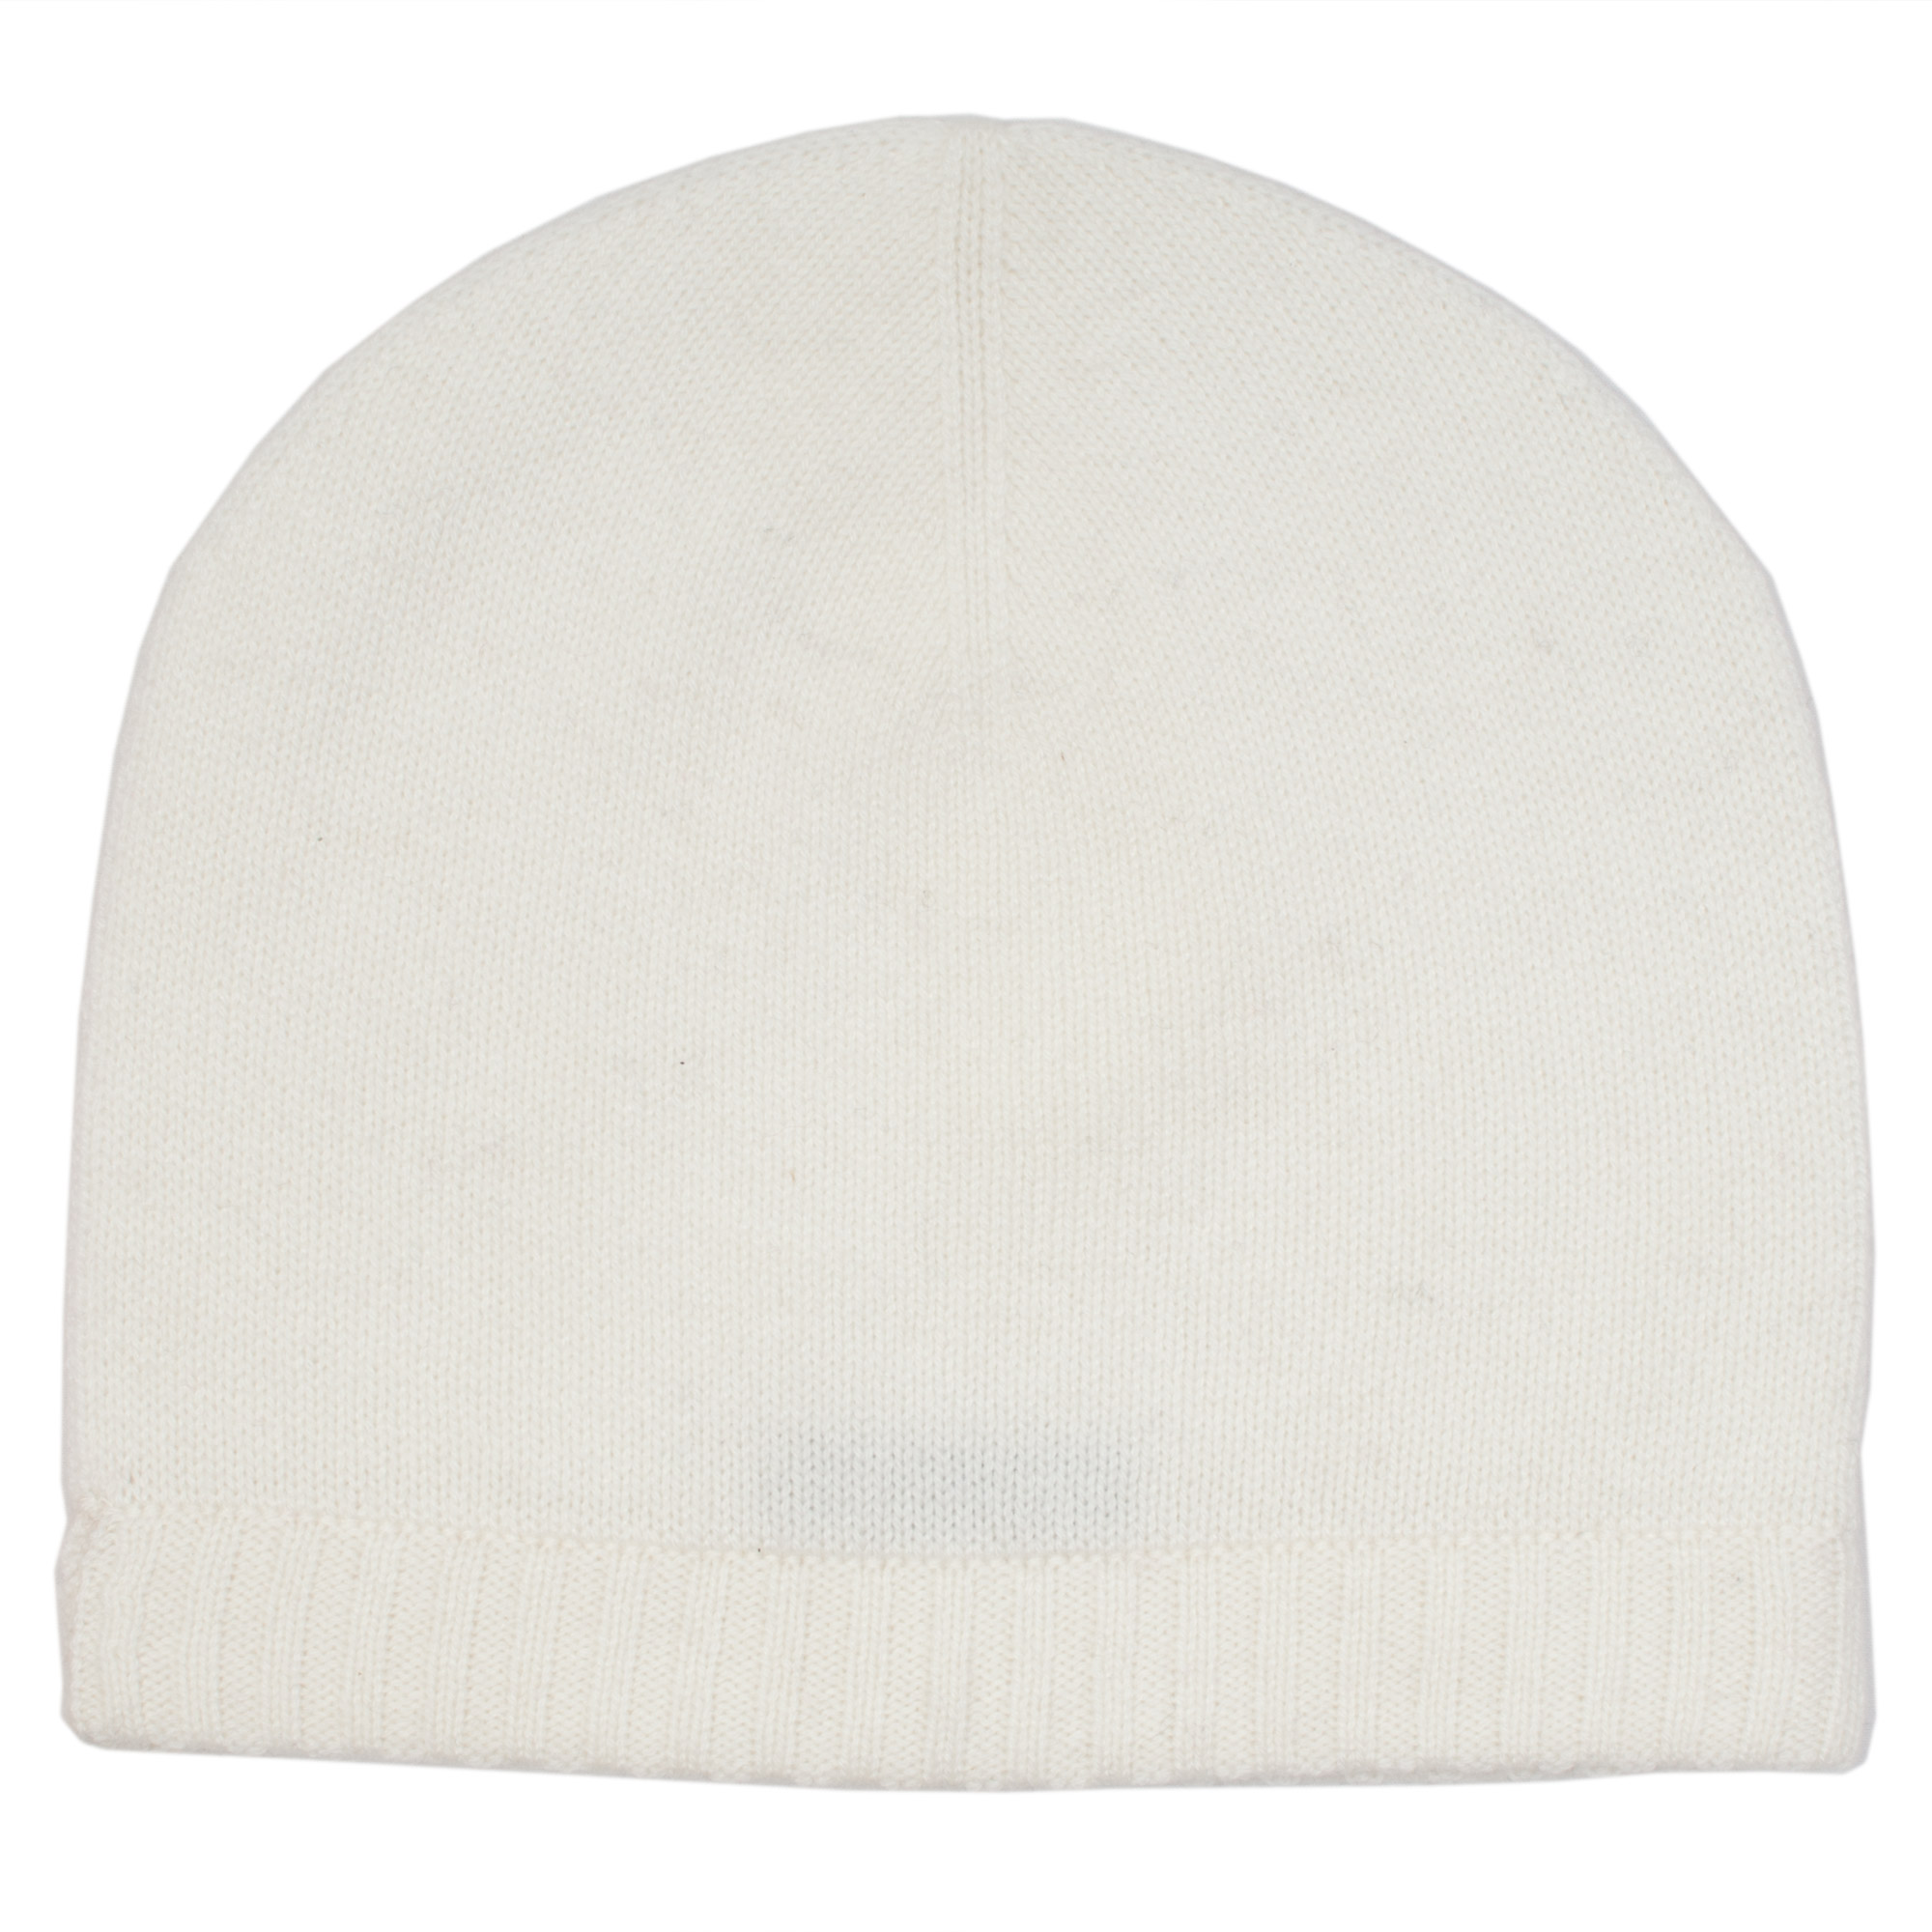 Ribbed Hem Hat - 100% Cashmere - Natural White